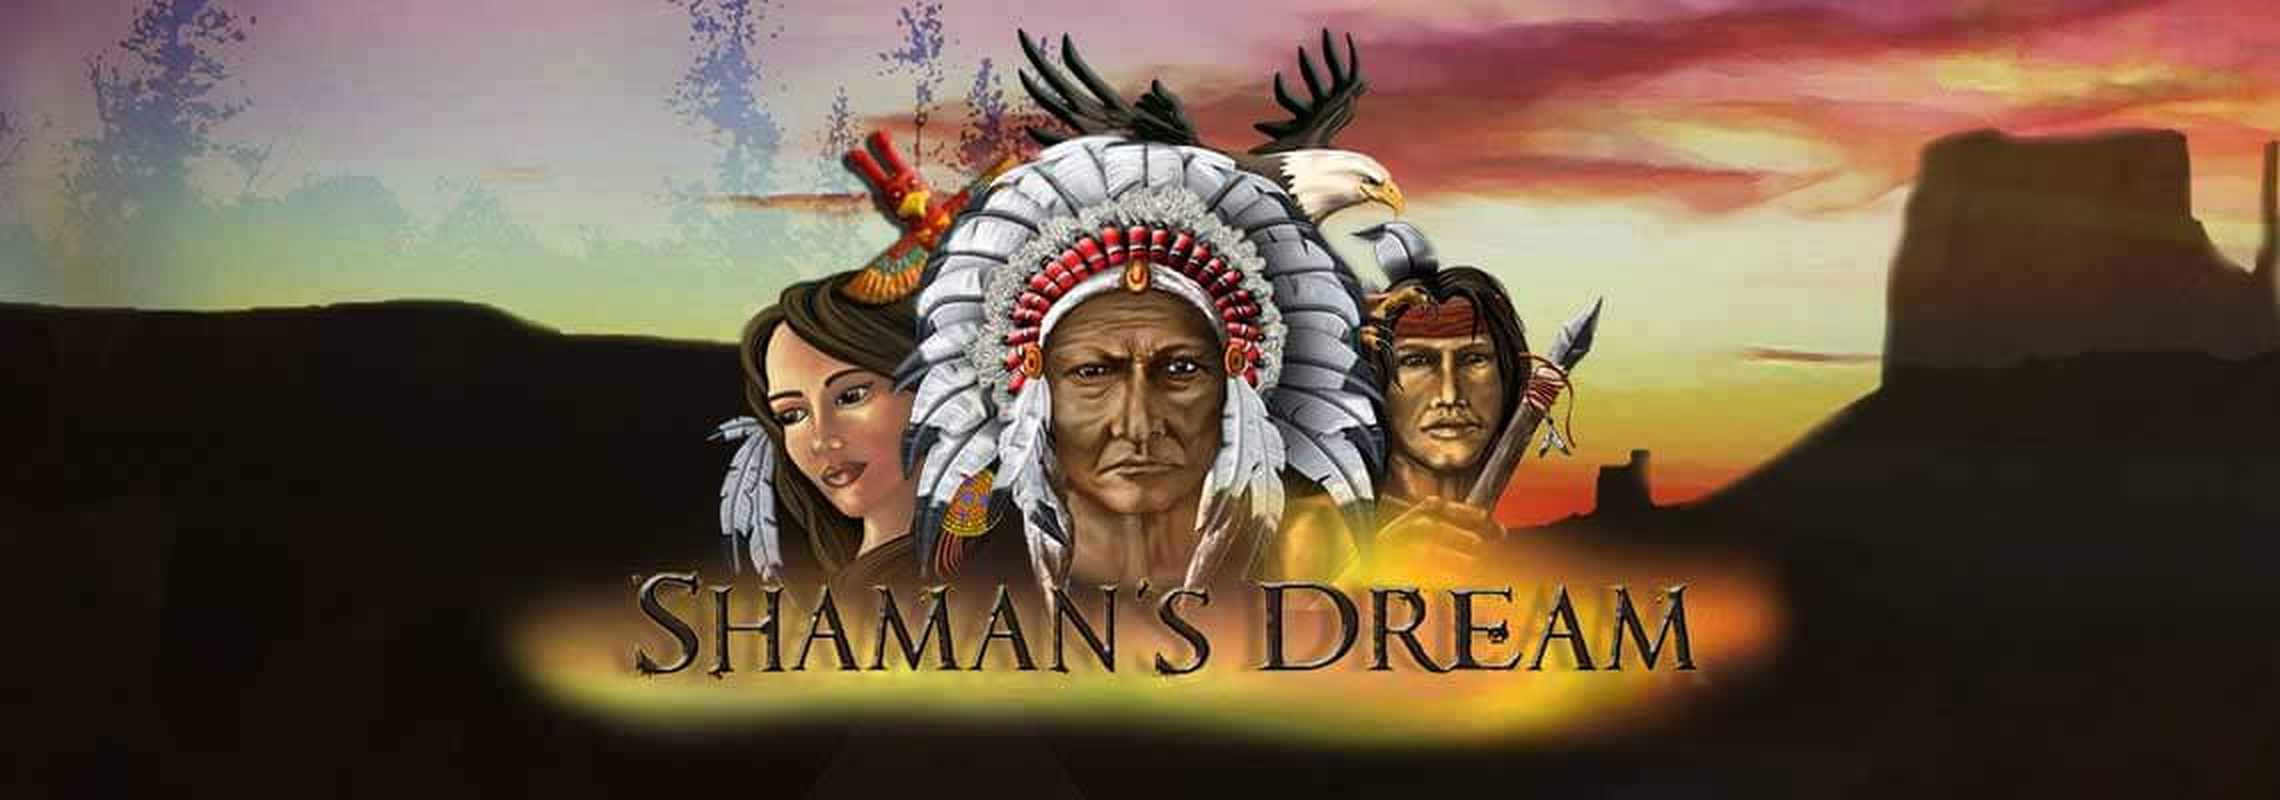 The Shaman's Dream Online Slot Demo Game by EYECON